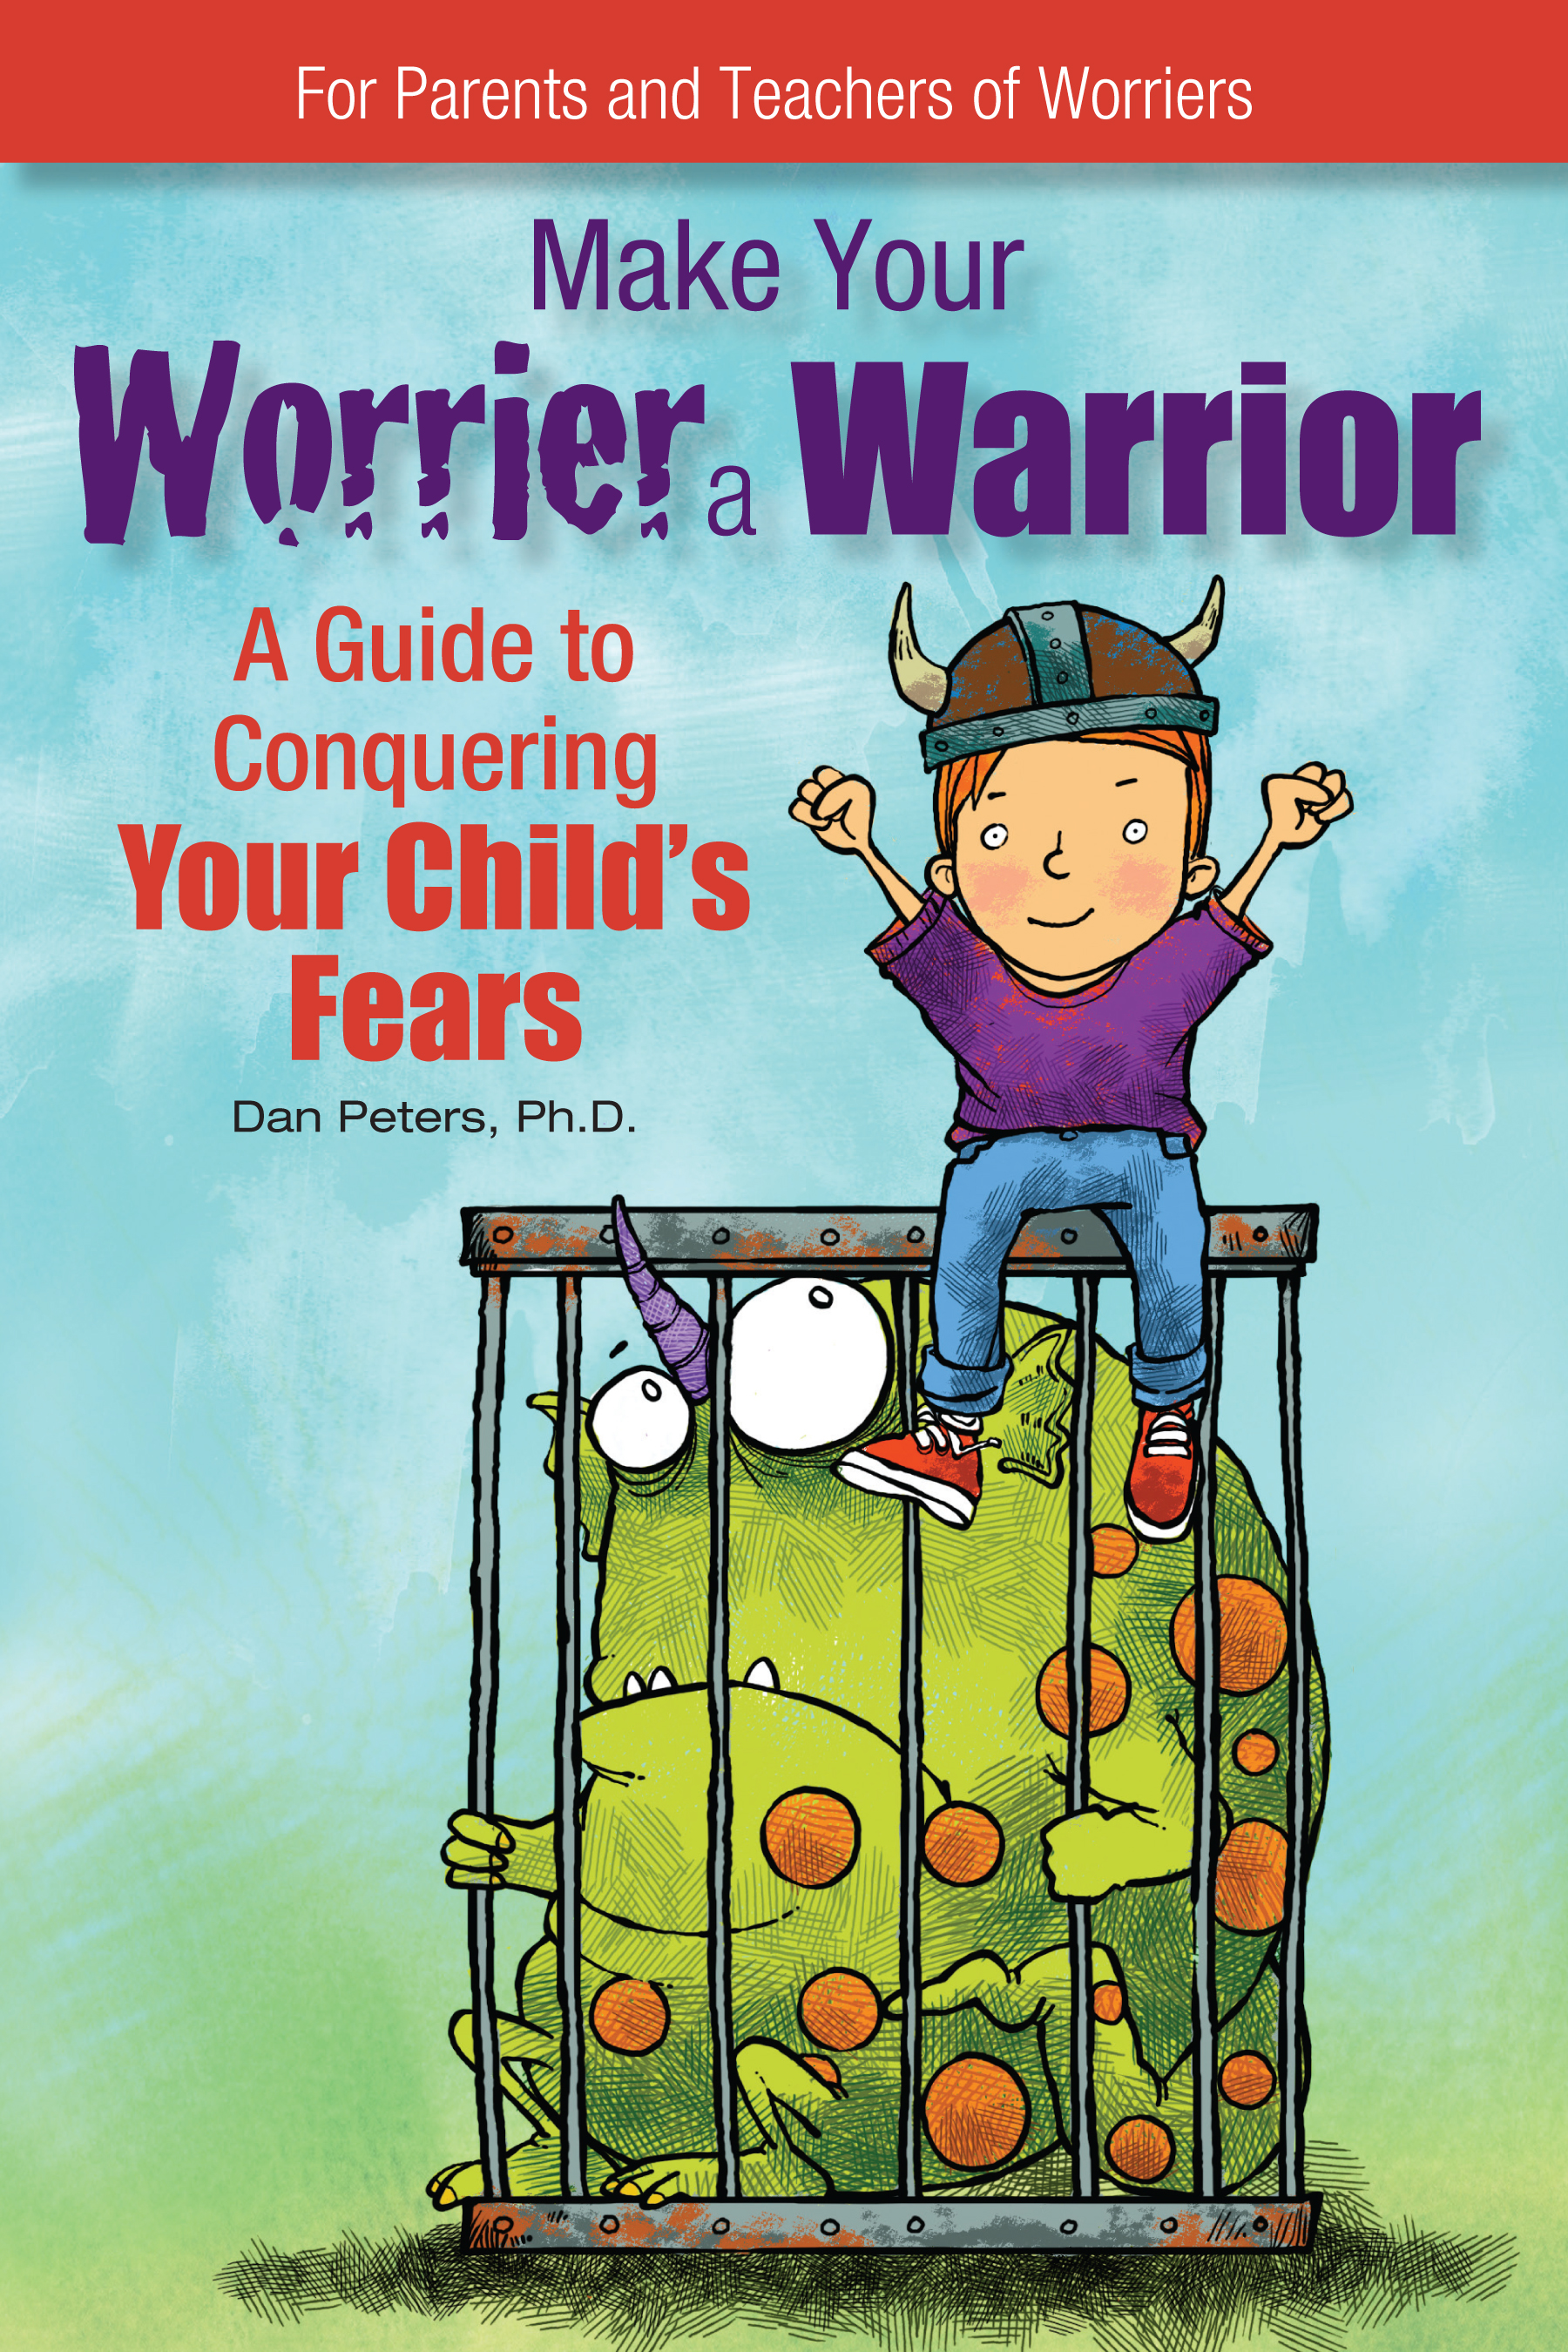 Make Your Worrier a Warrior